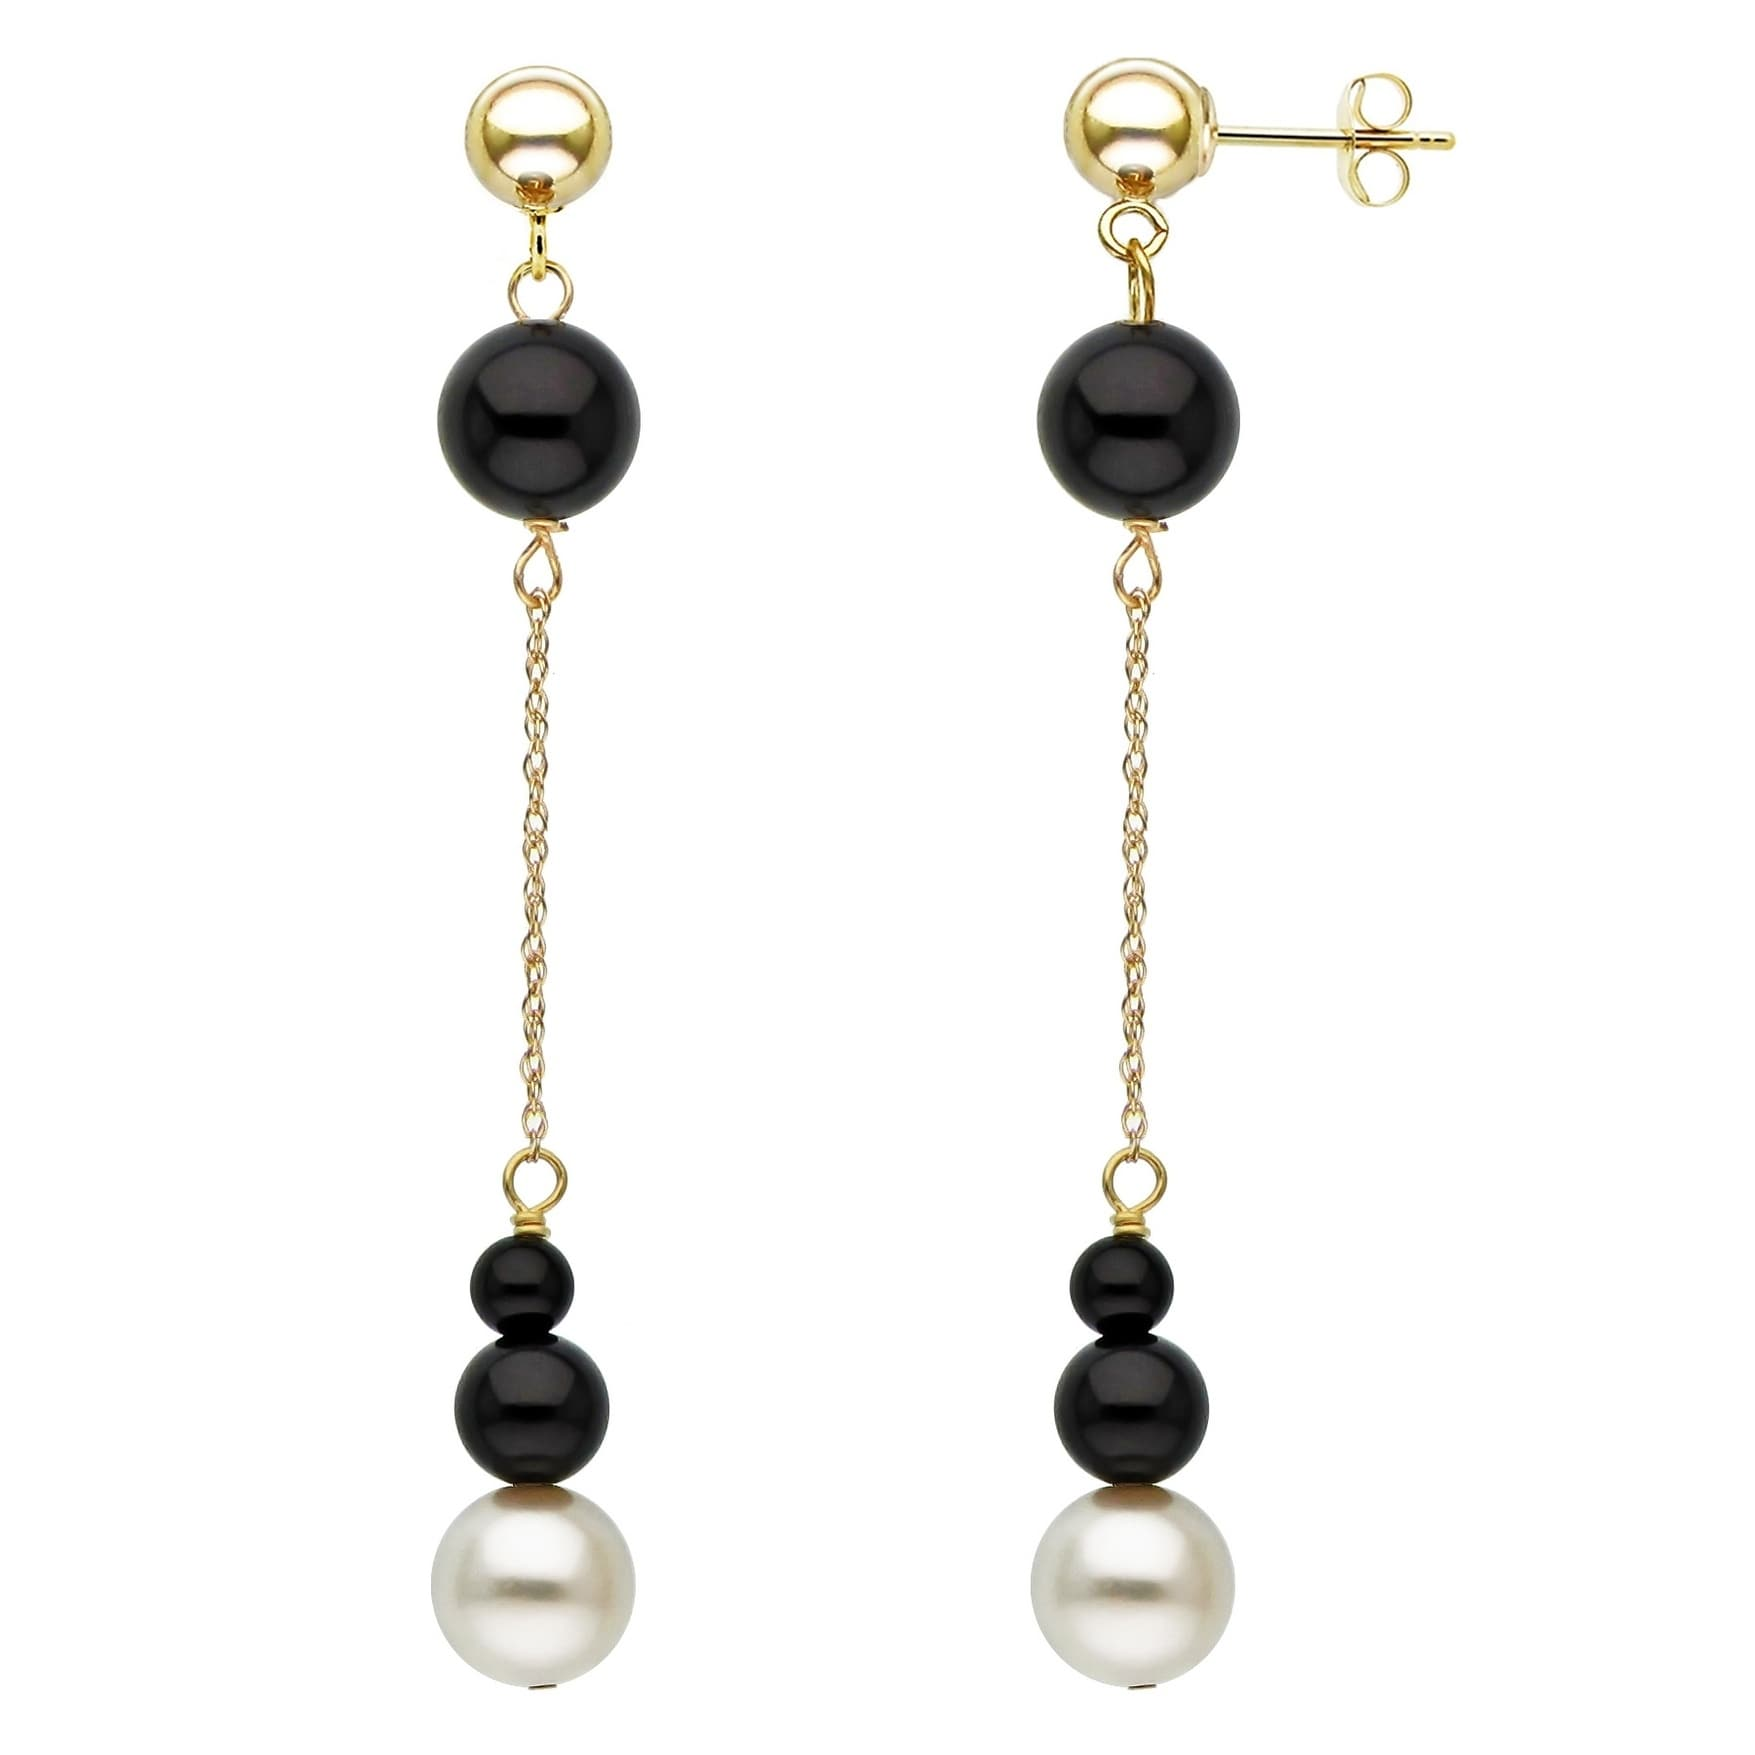 14K Solid Yellow Gold 8 mm Ball Shaped Onyx Leverback Dangle Drop Earrings